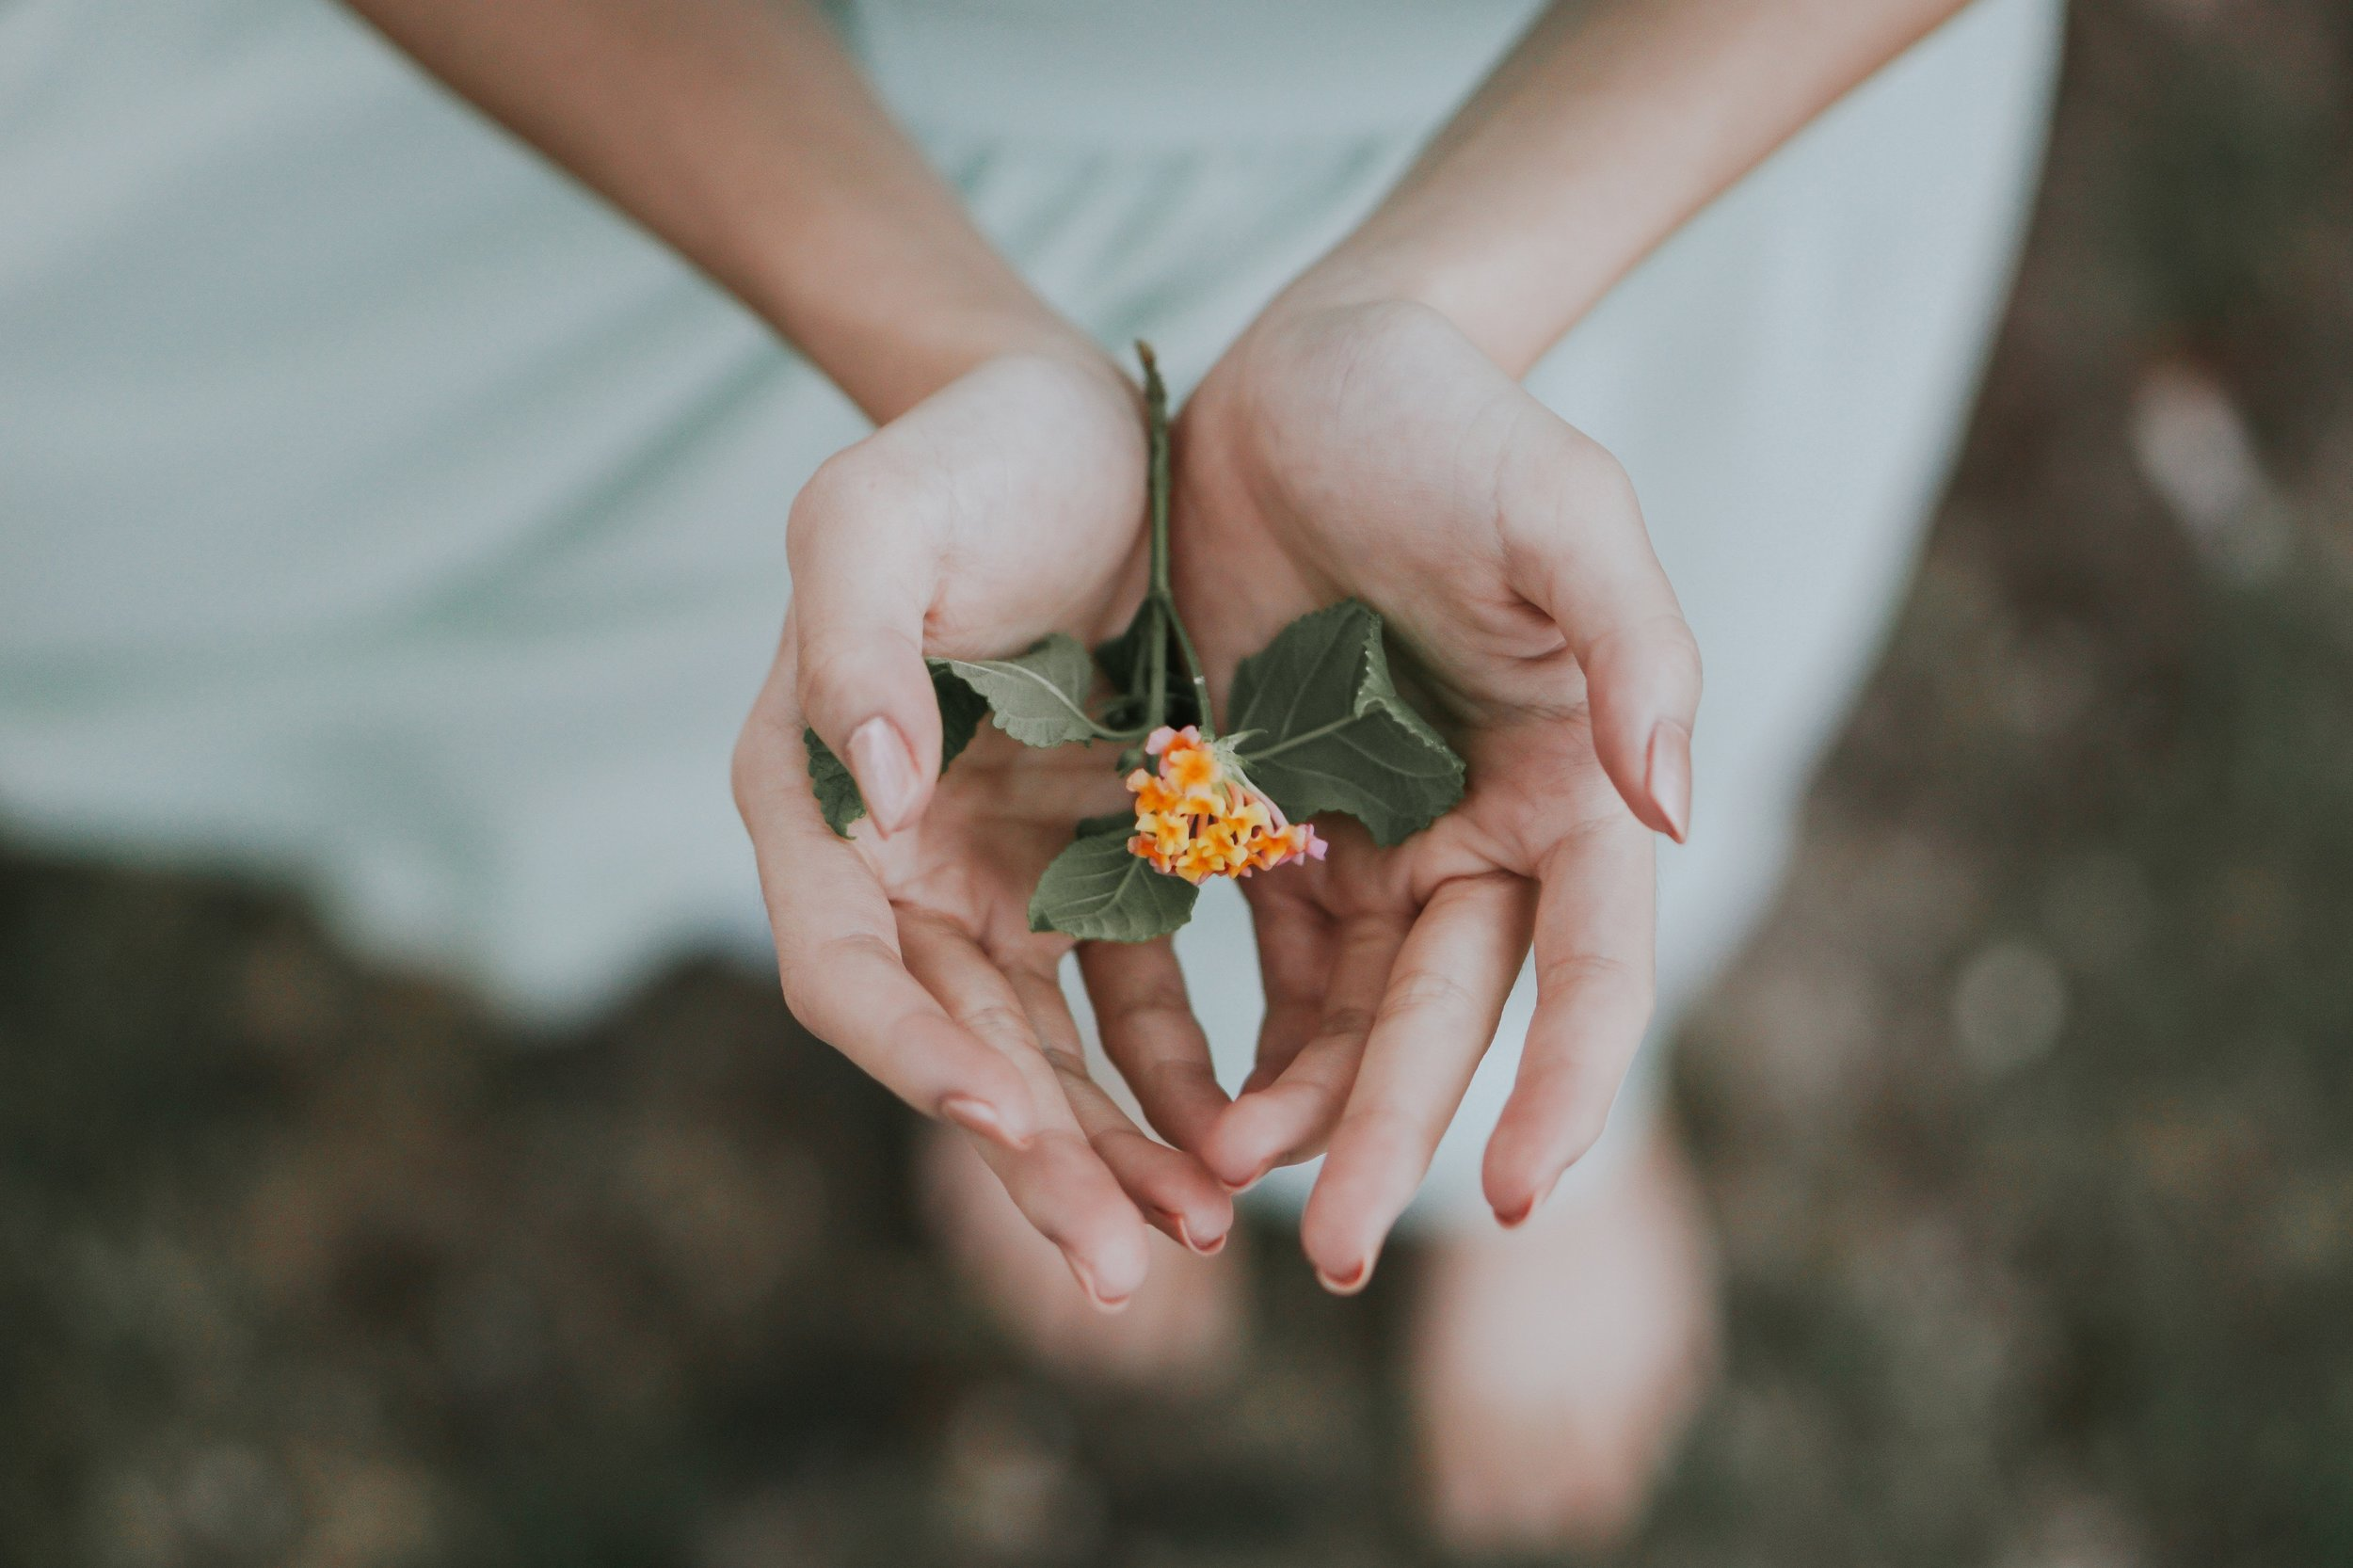 """- Beyond 2018, wellness will find itself a word by the wayside in favour of the umbrella term of """"self-care"""". Self-care encapsulates physical, mental, emotional and inner well-being."""